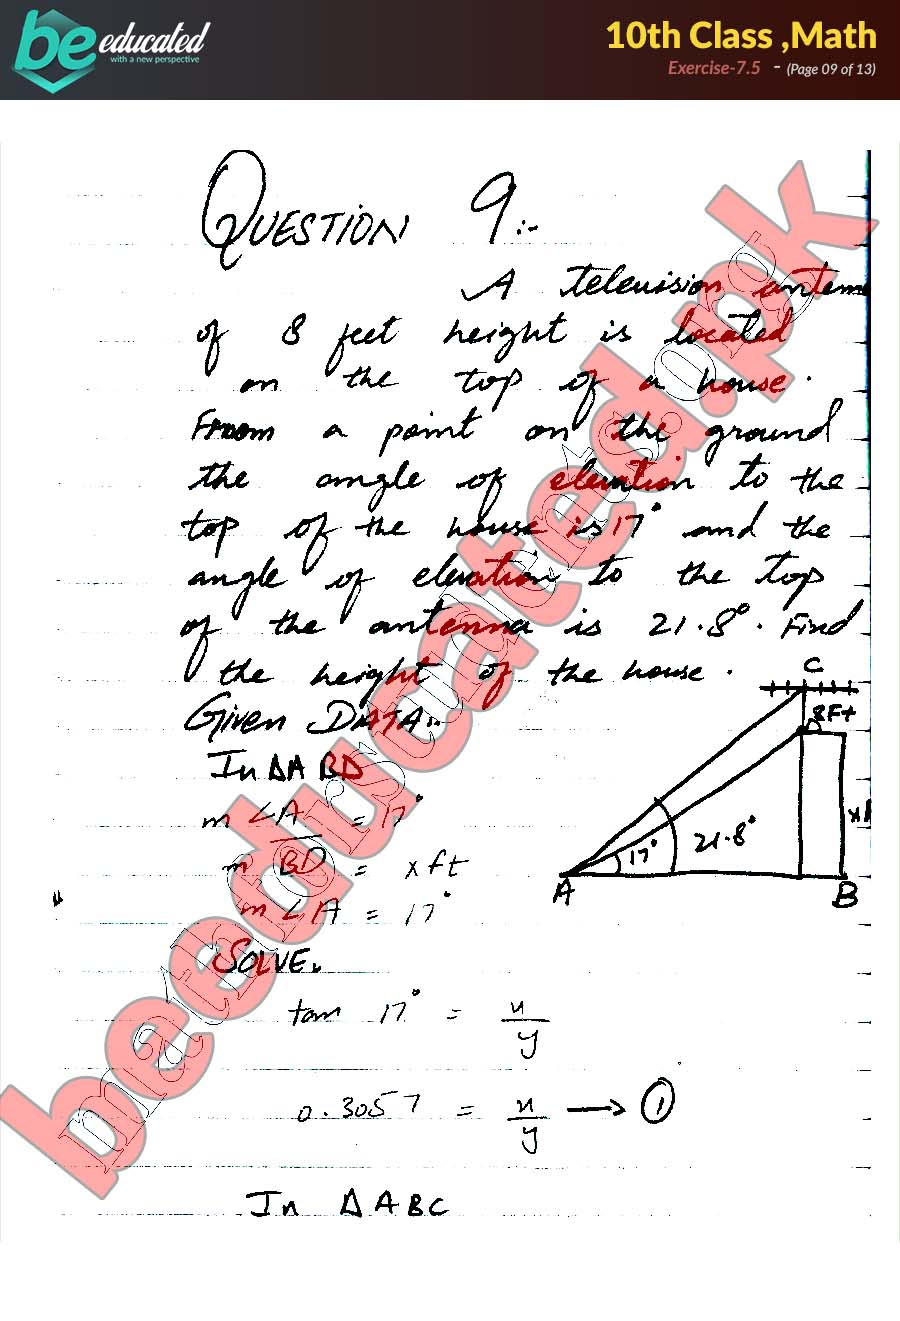 Exercise 7 5 Math 10th Class Notes - Matric Part 2 Notes